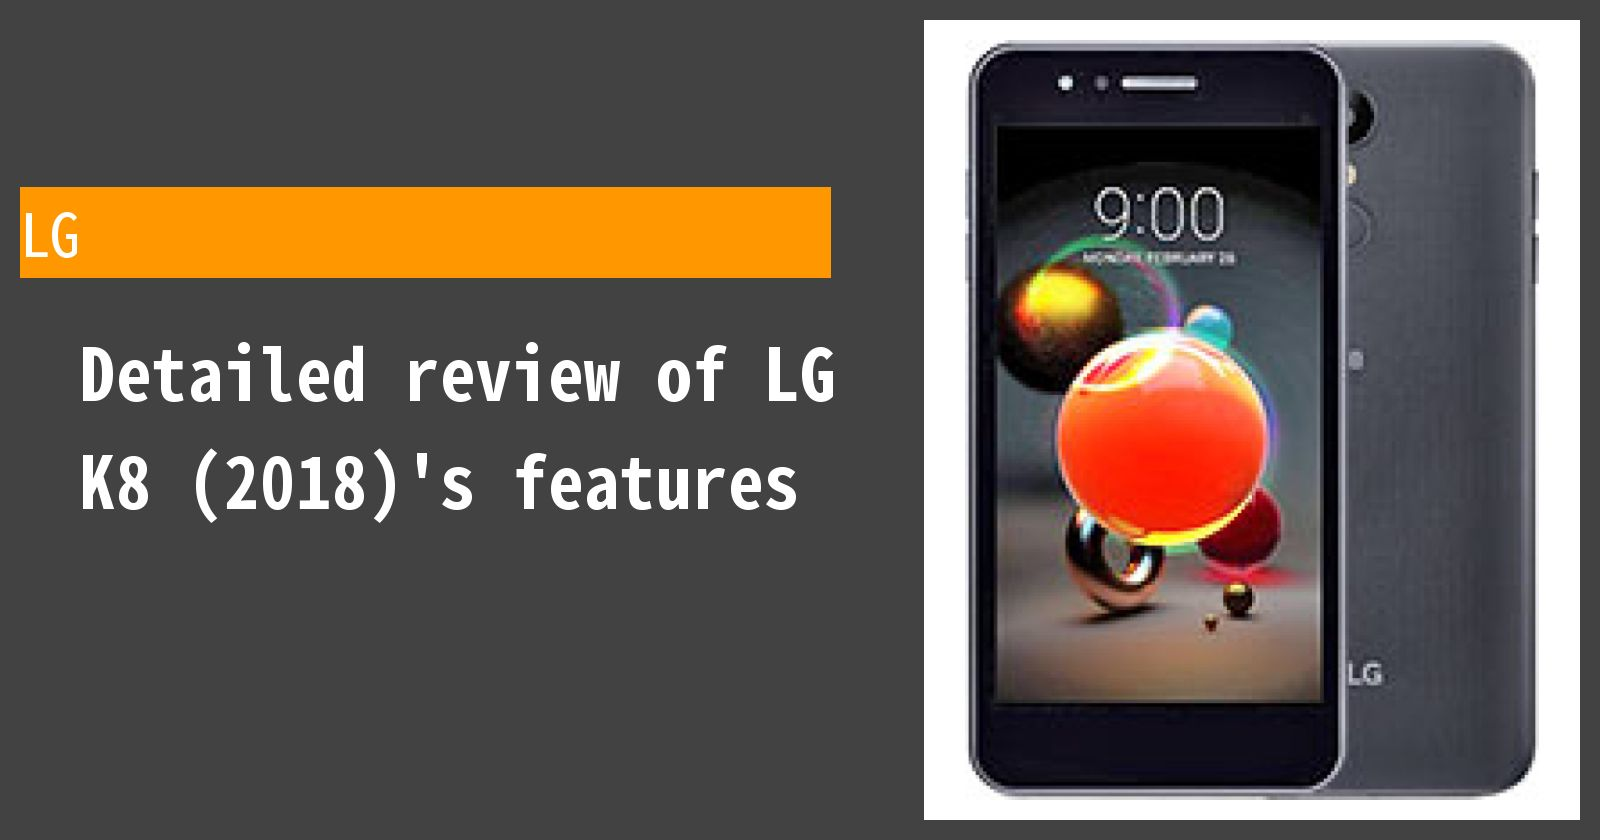 Detailed review of LG K8 (2018)'s features